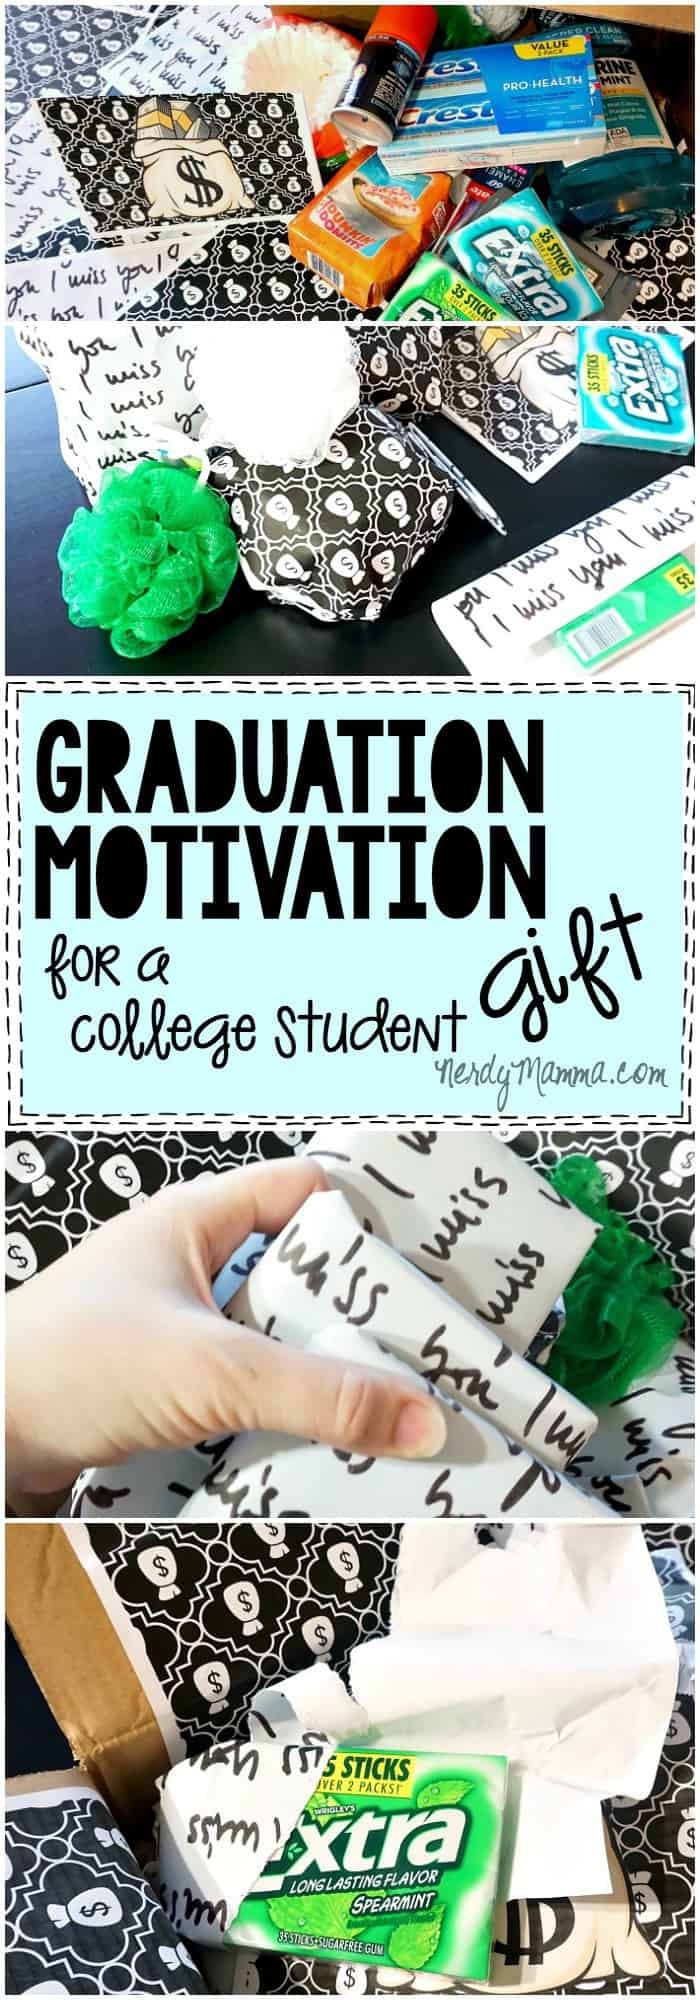 Such a great idea for sending a college student a care package gift to help motivate them to graduate! Such a sweet thought.